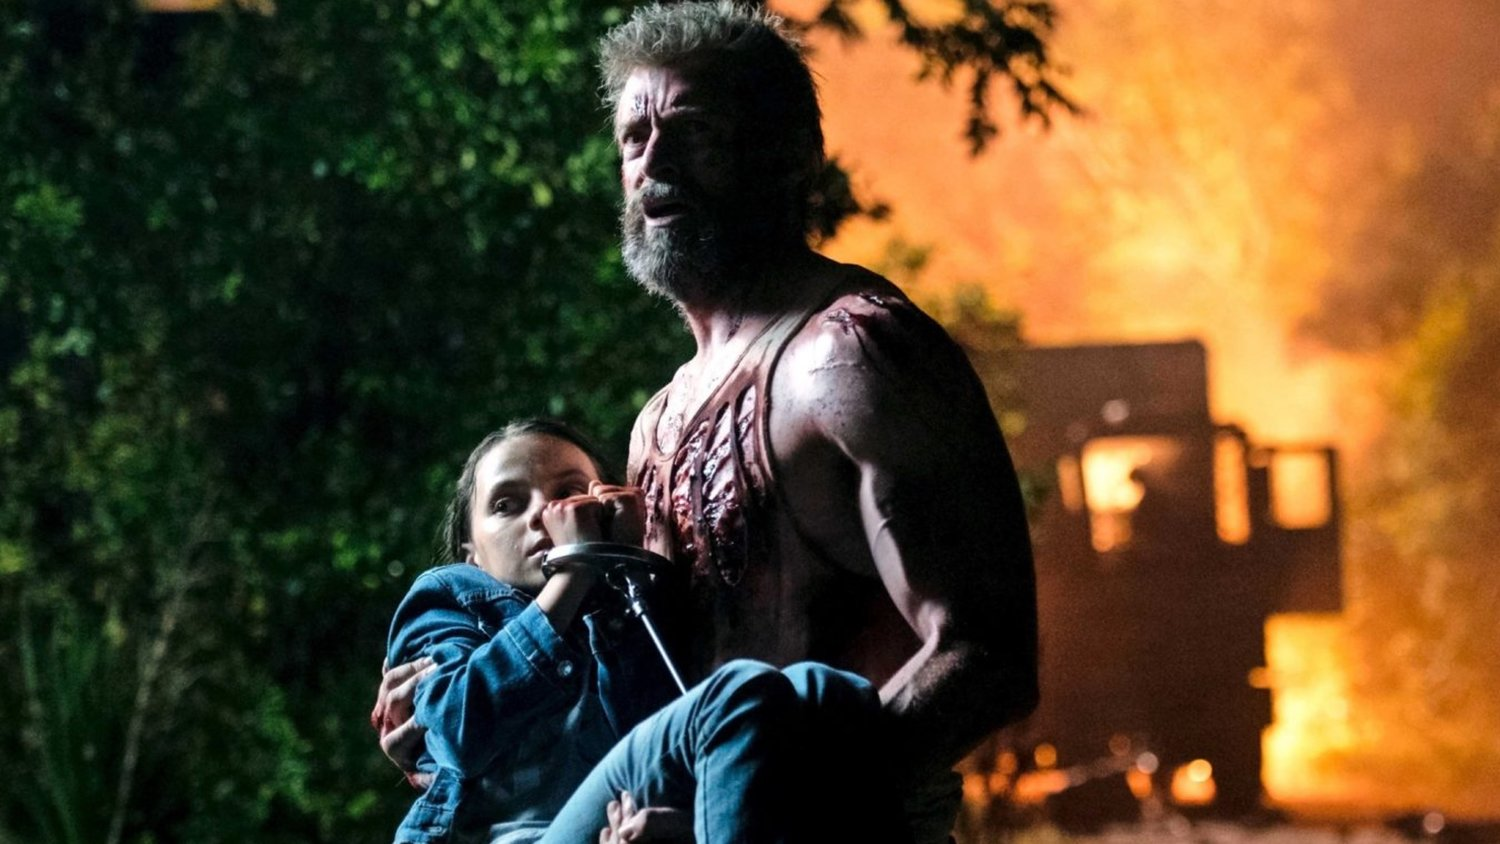 Hugh Jackman Reveals Trick to Playing Old Man Logan; LOGAN Was Inspired by LITTLE MISS SUNSHINE